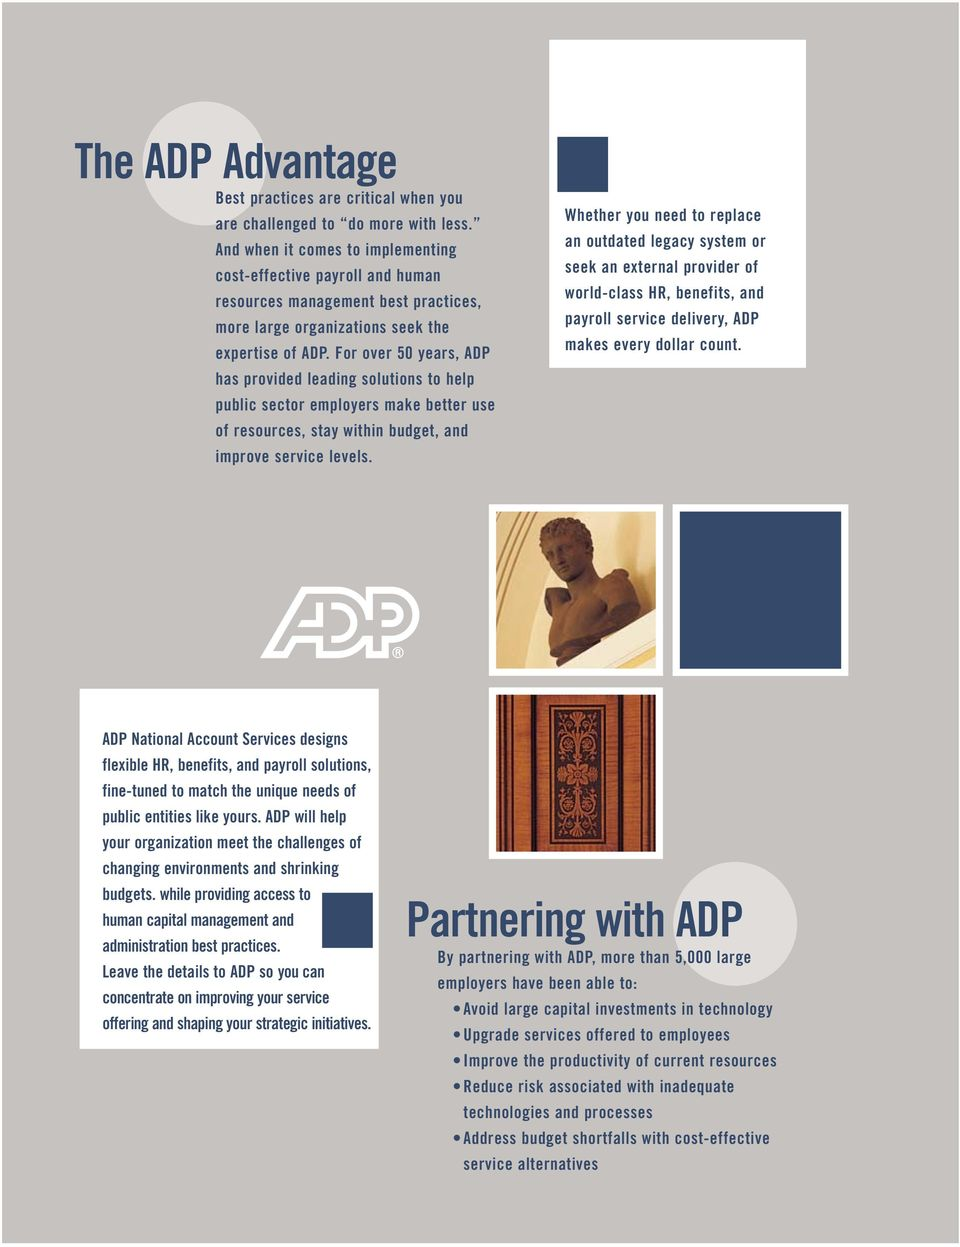 For over 50 years, ADP has provided leading solutions to help public sector employers make better use of resources, stay within budget, and improve service levels.